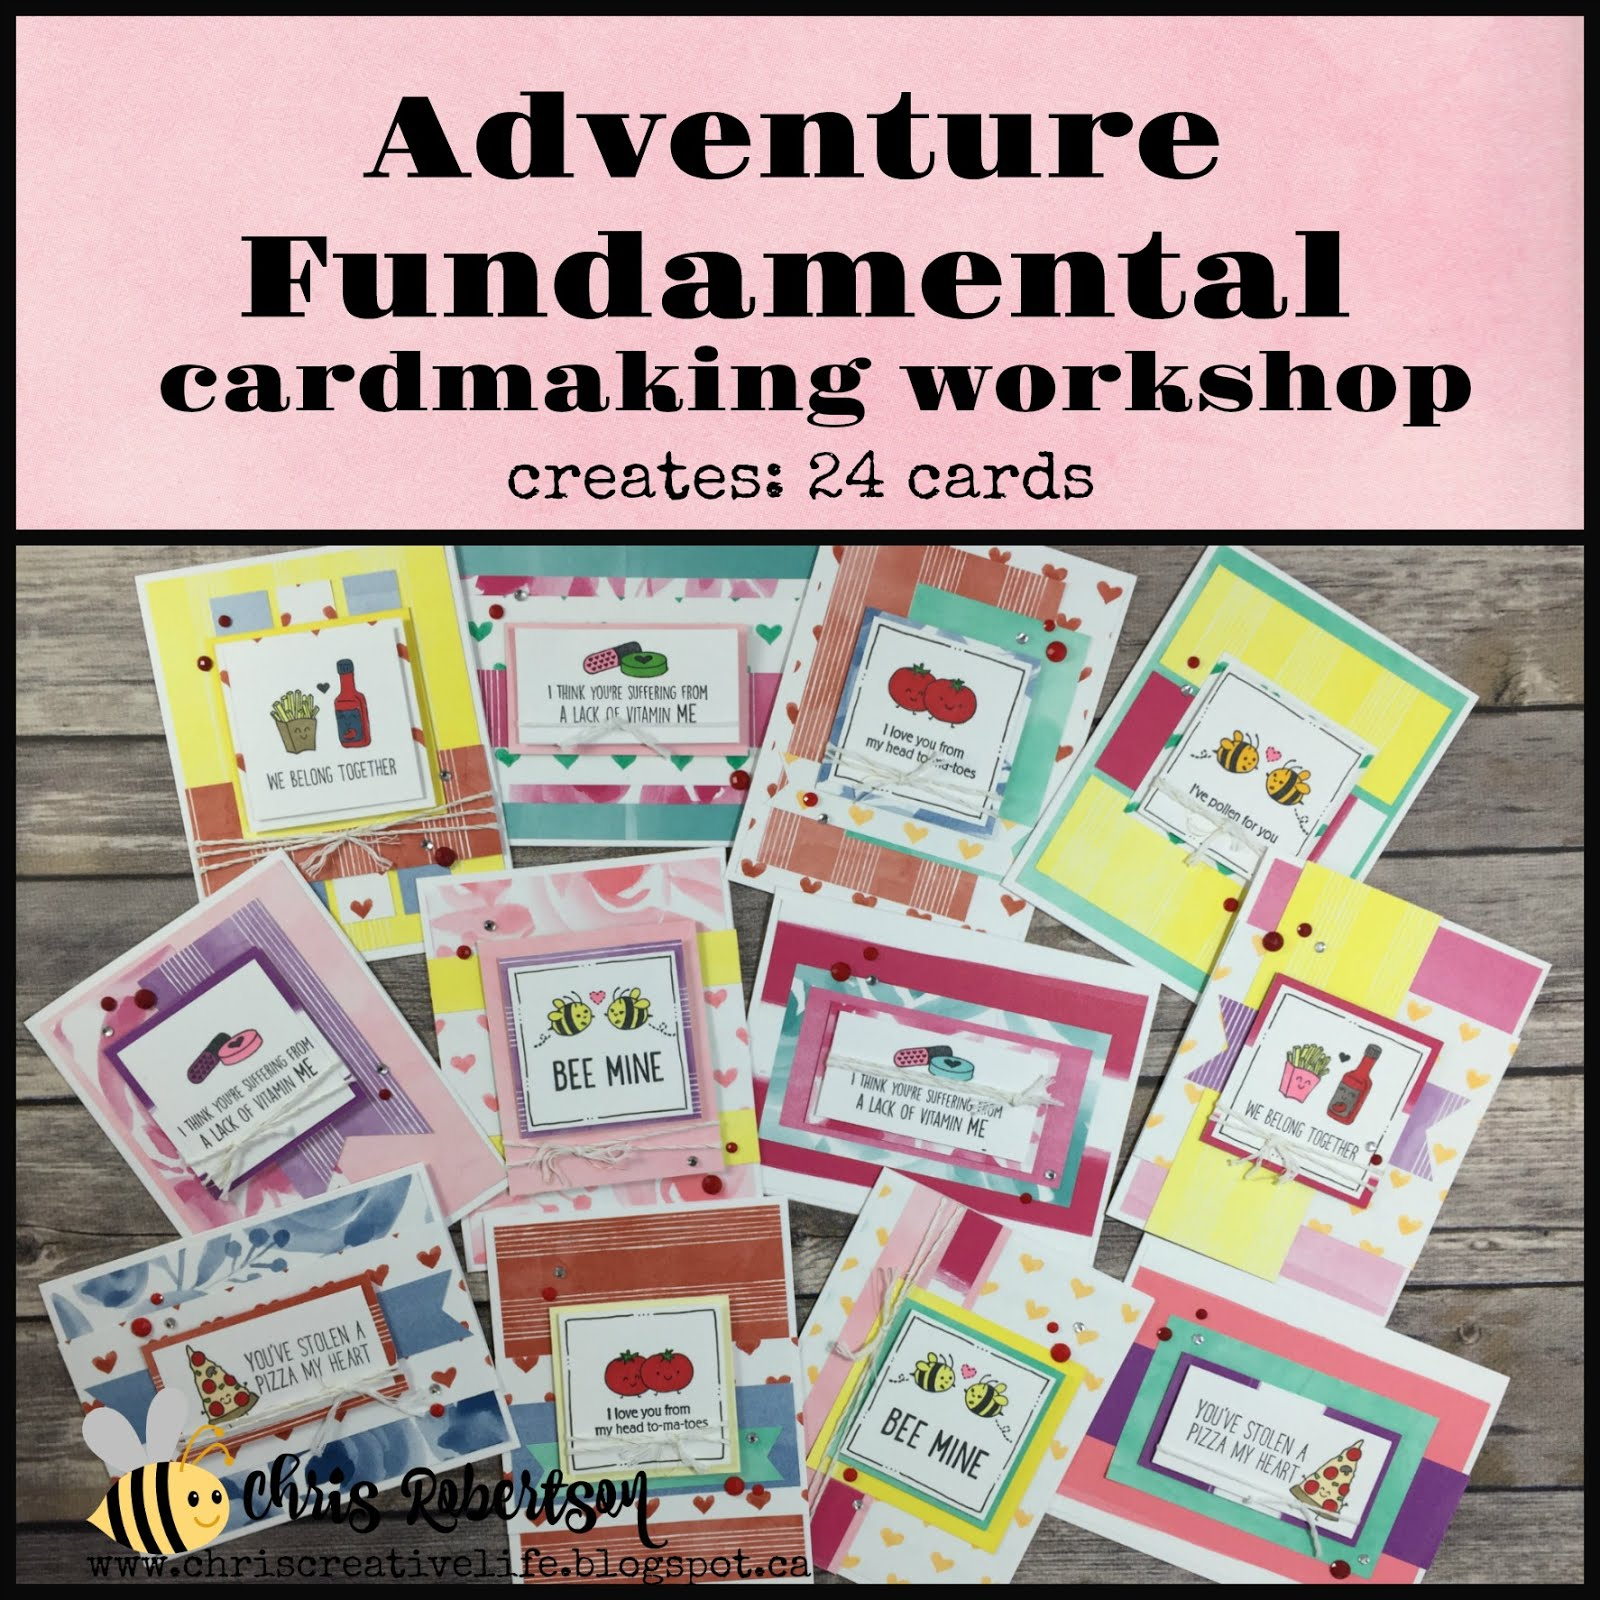 Adventure Cardmaking Workshop